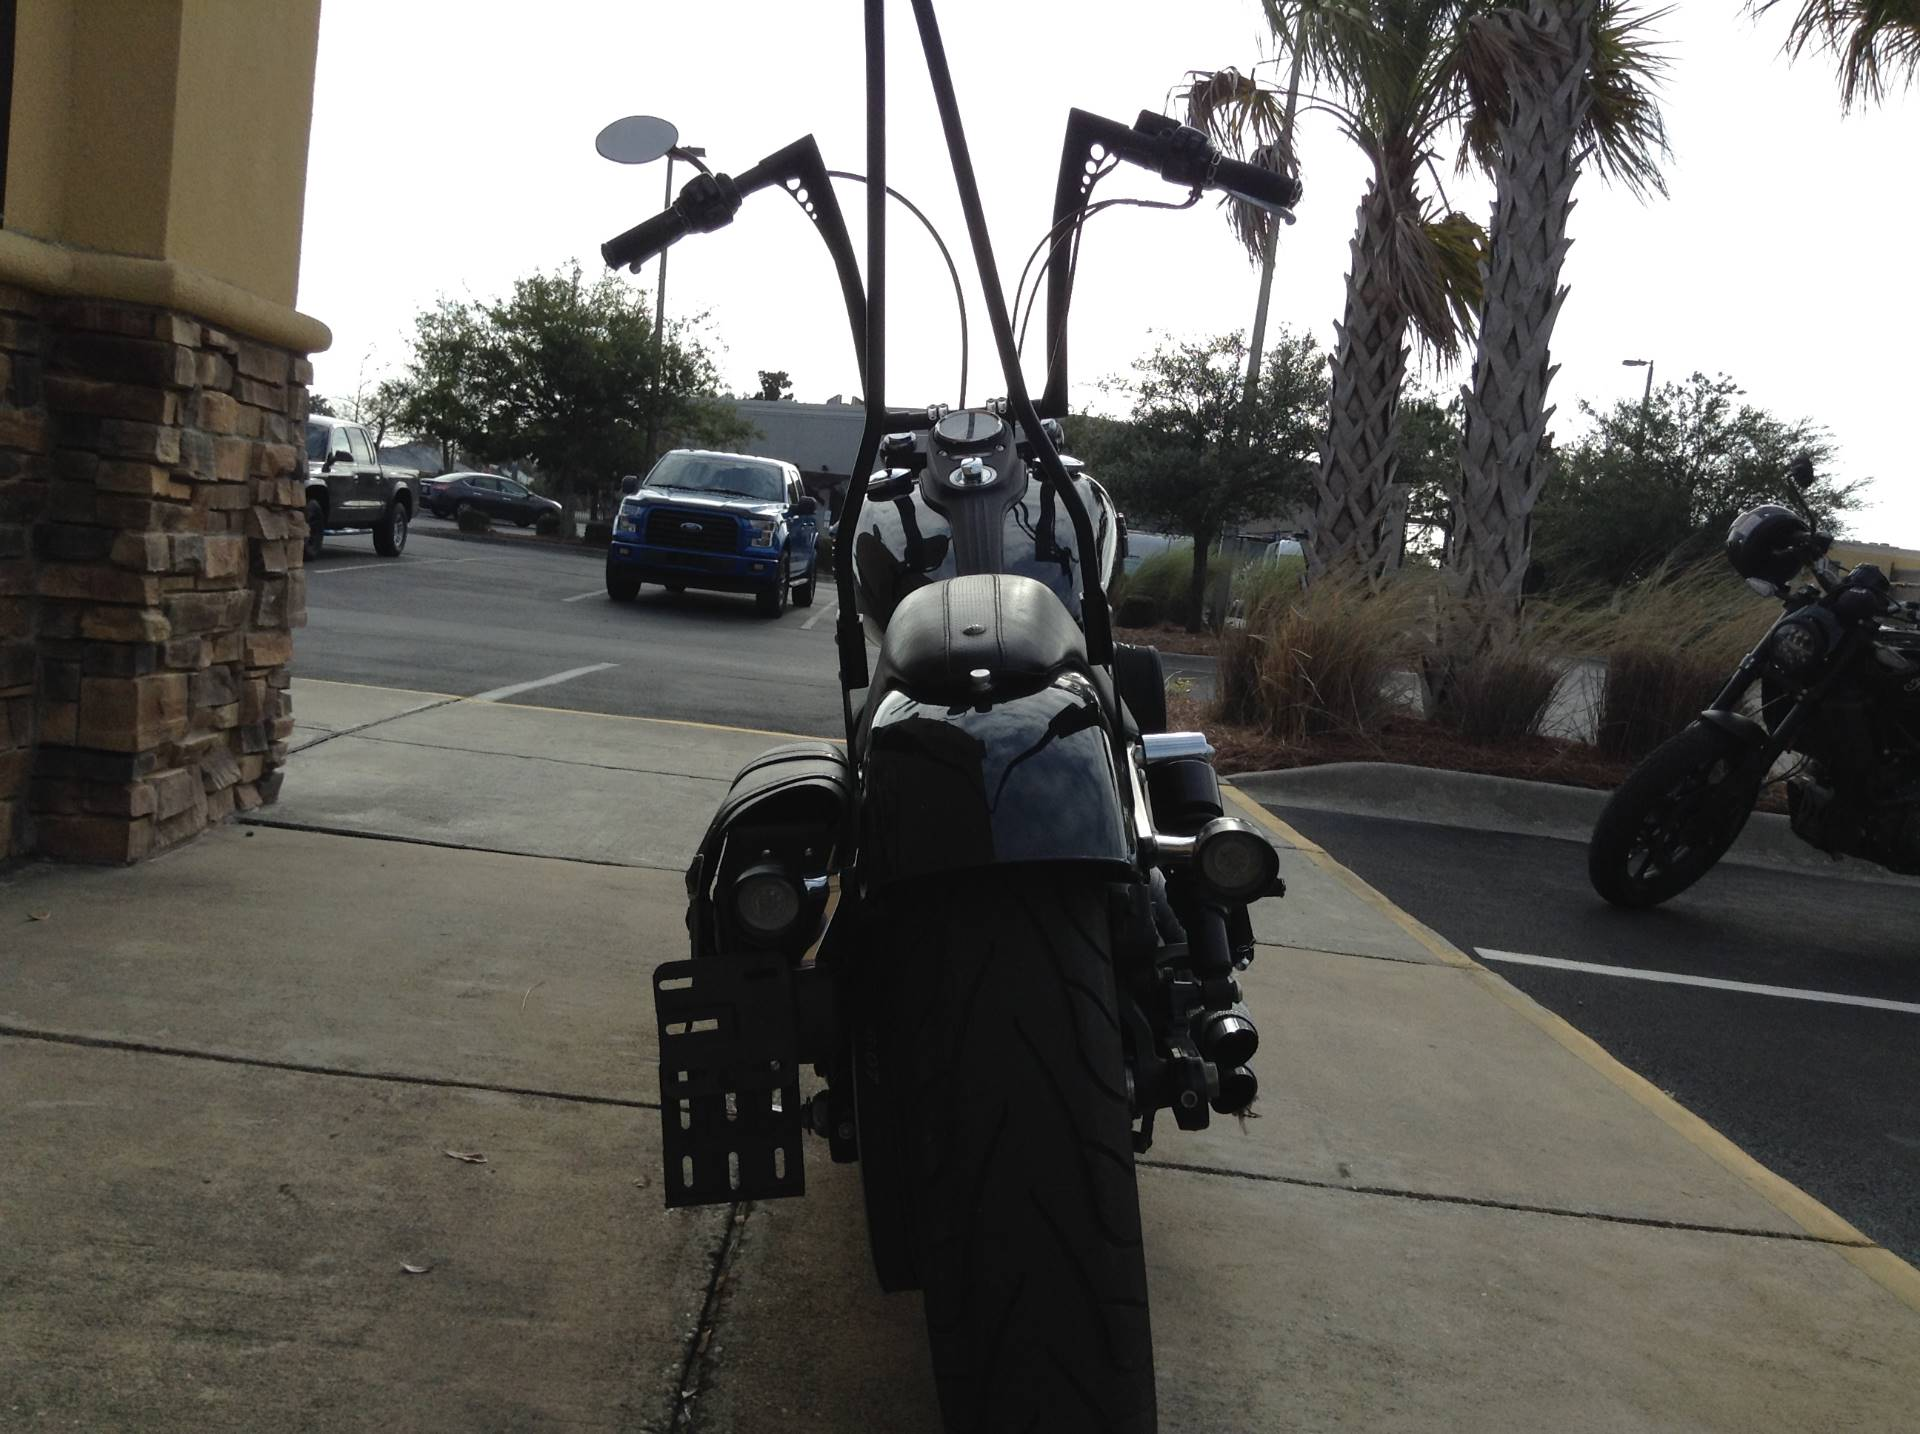 2014 Harley-Davidson STREET BOB in Panama City Beach, Florida - Photo 7